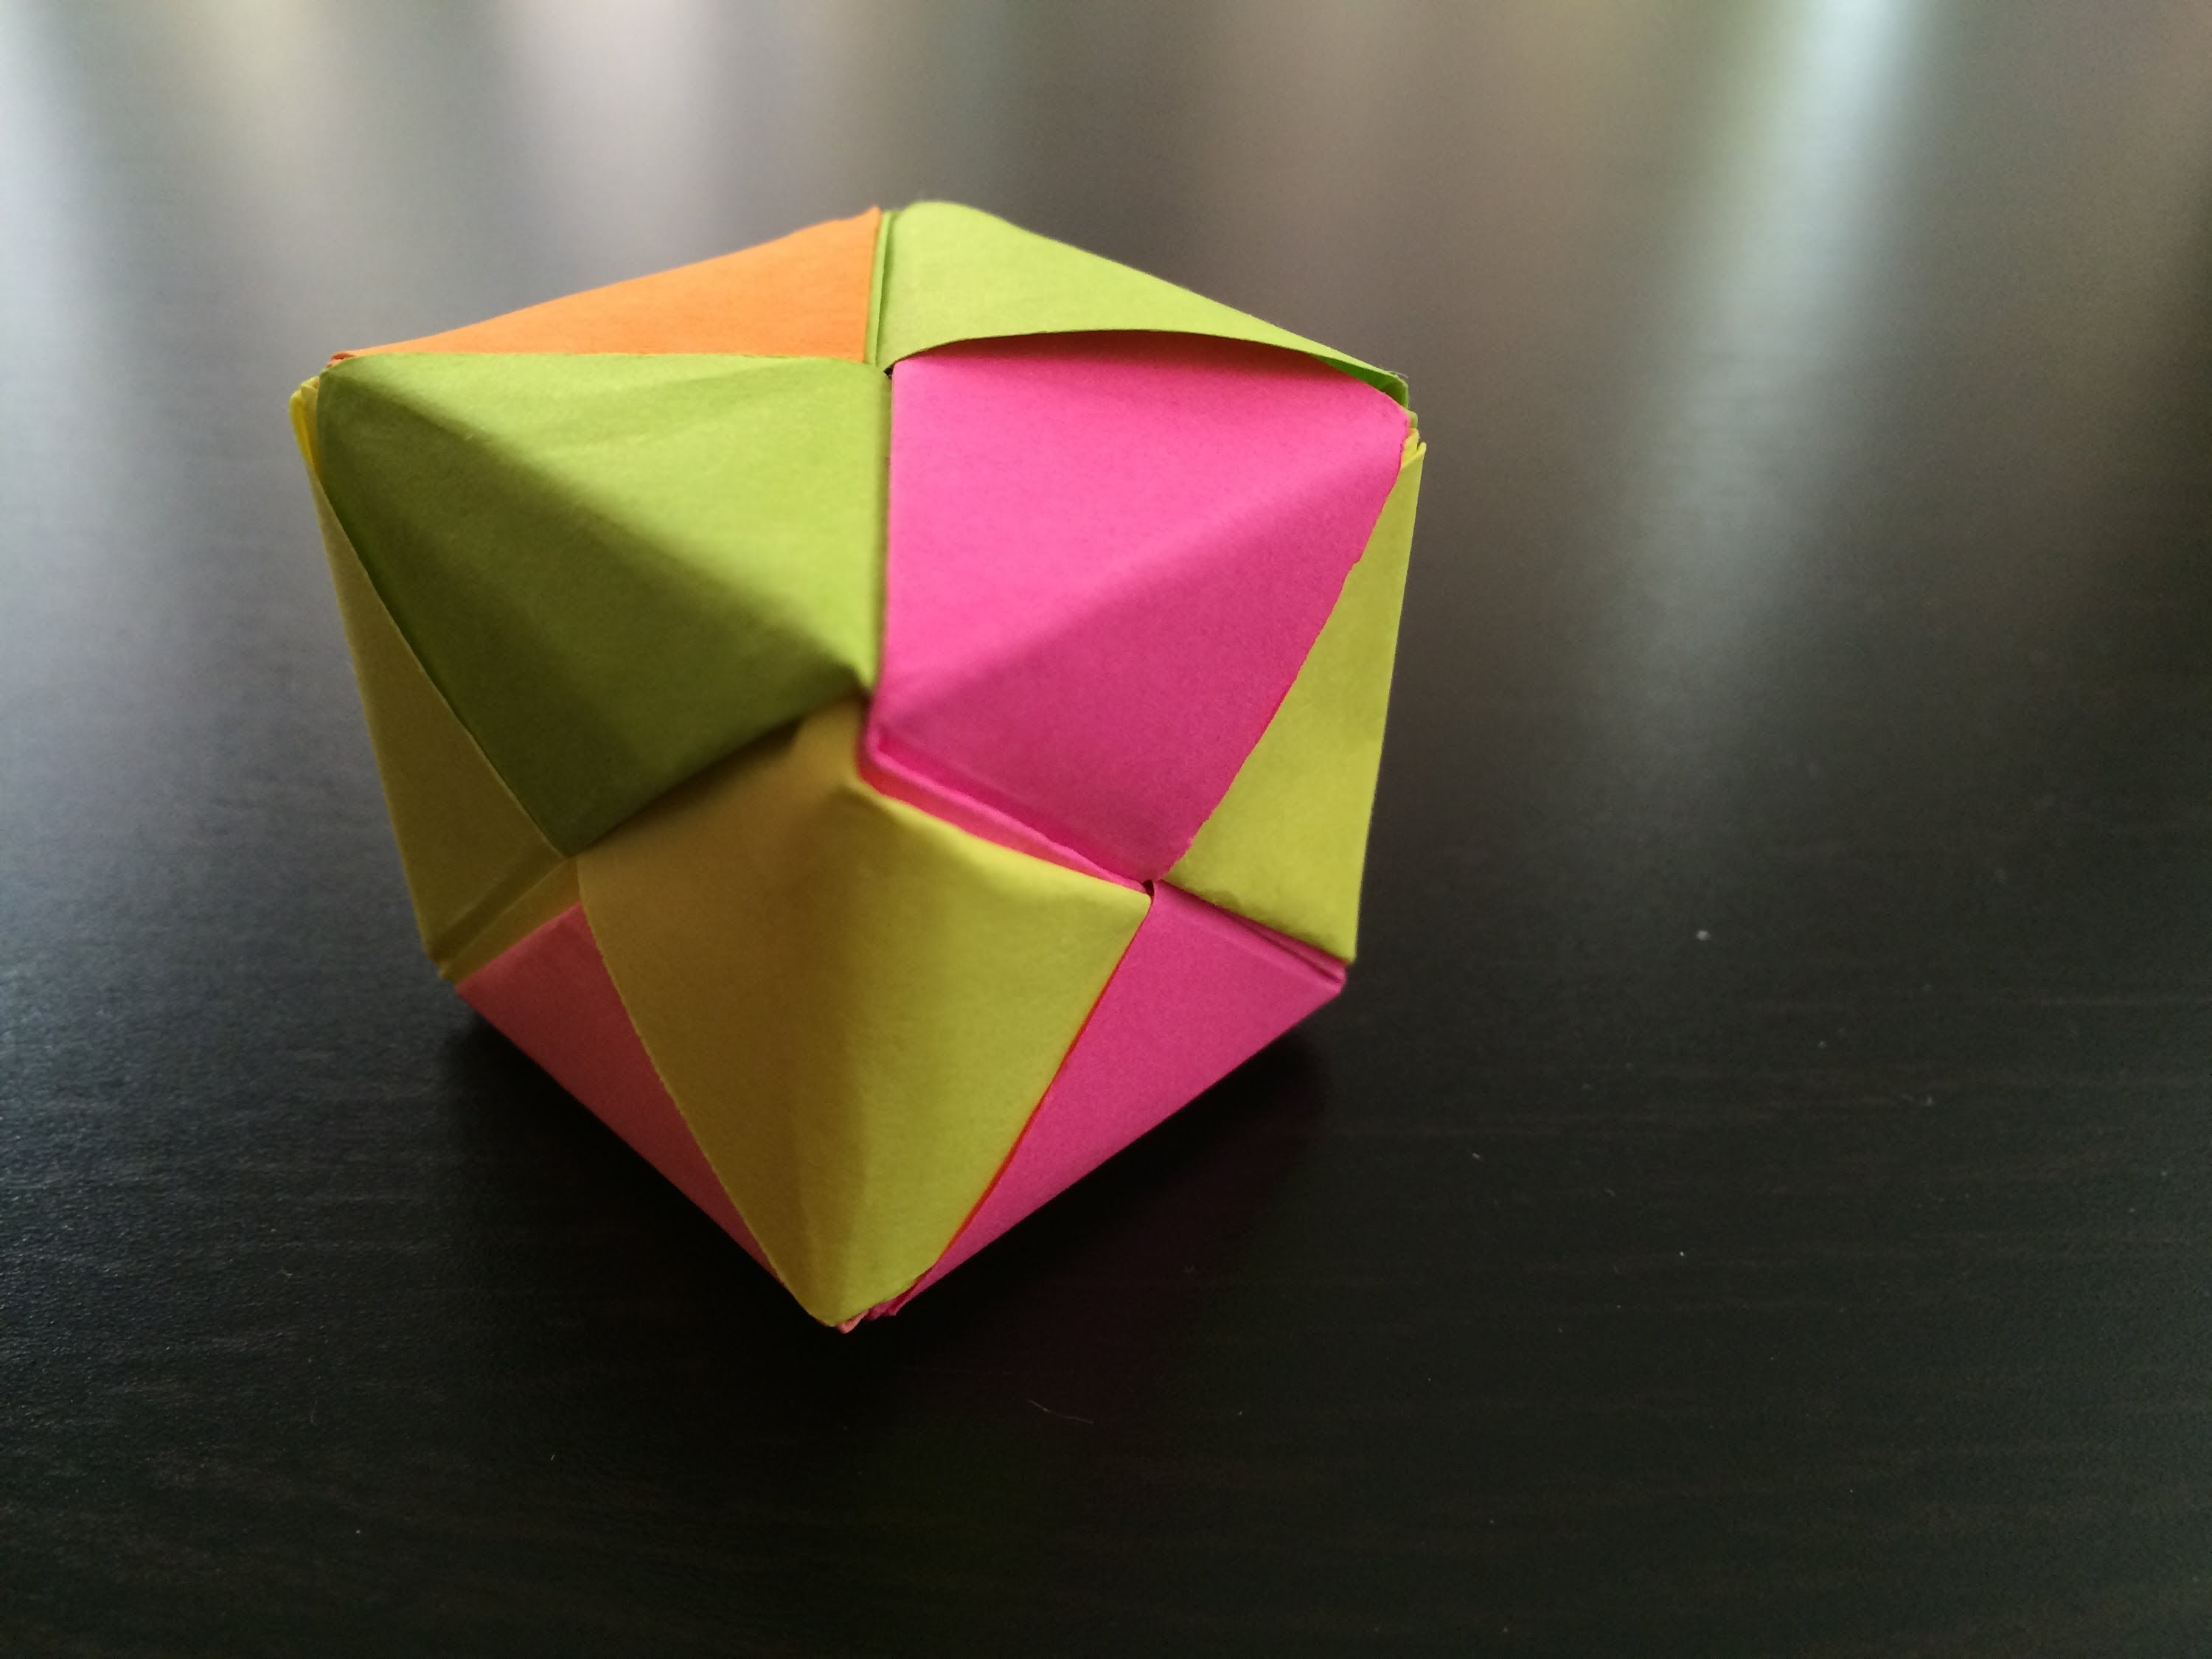 How to make origami cube box - photo#17